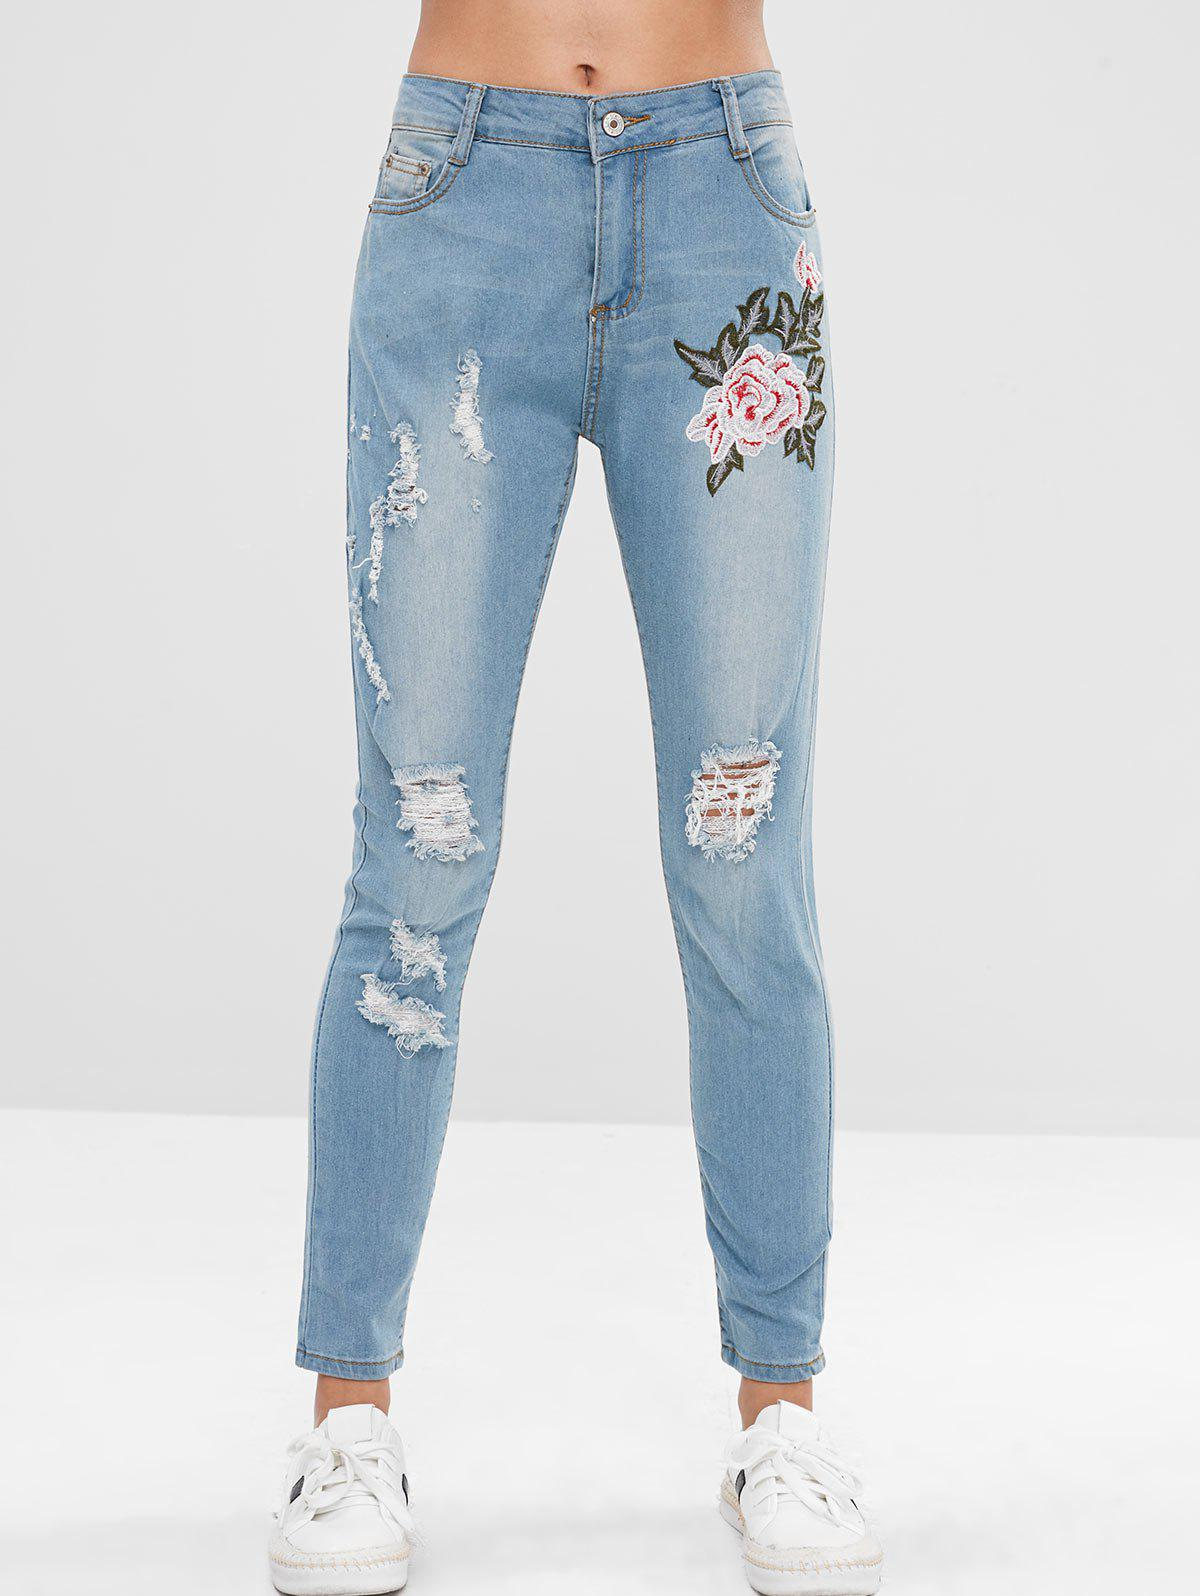 Distressed Floral Embroidered Jeans 283579303